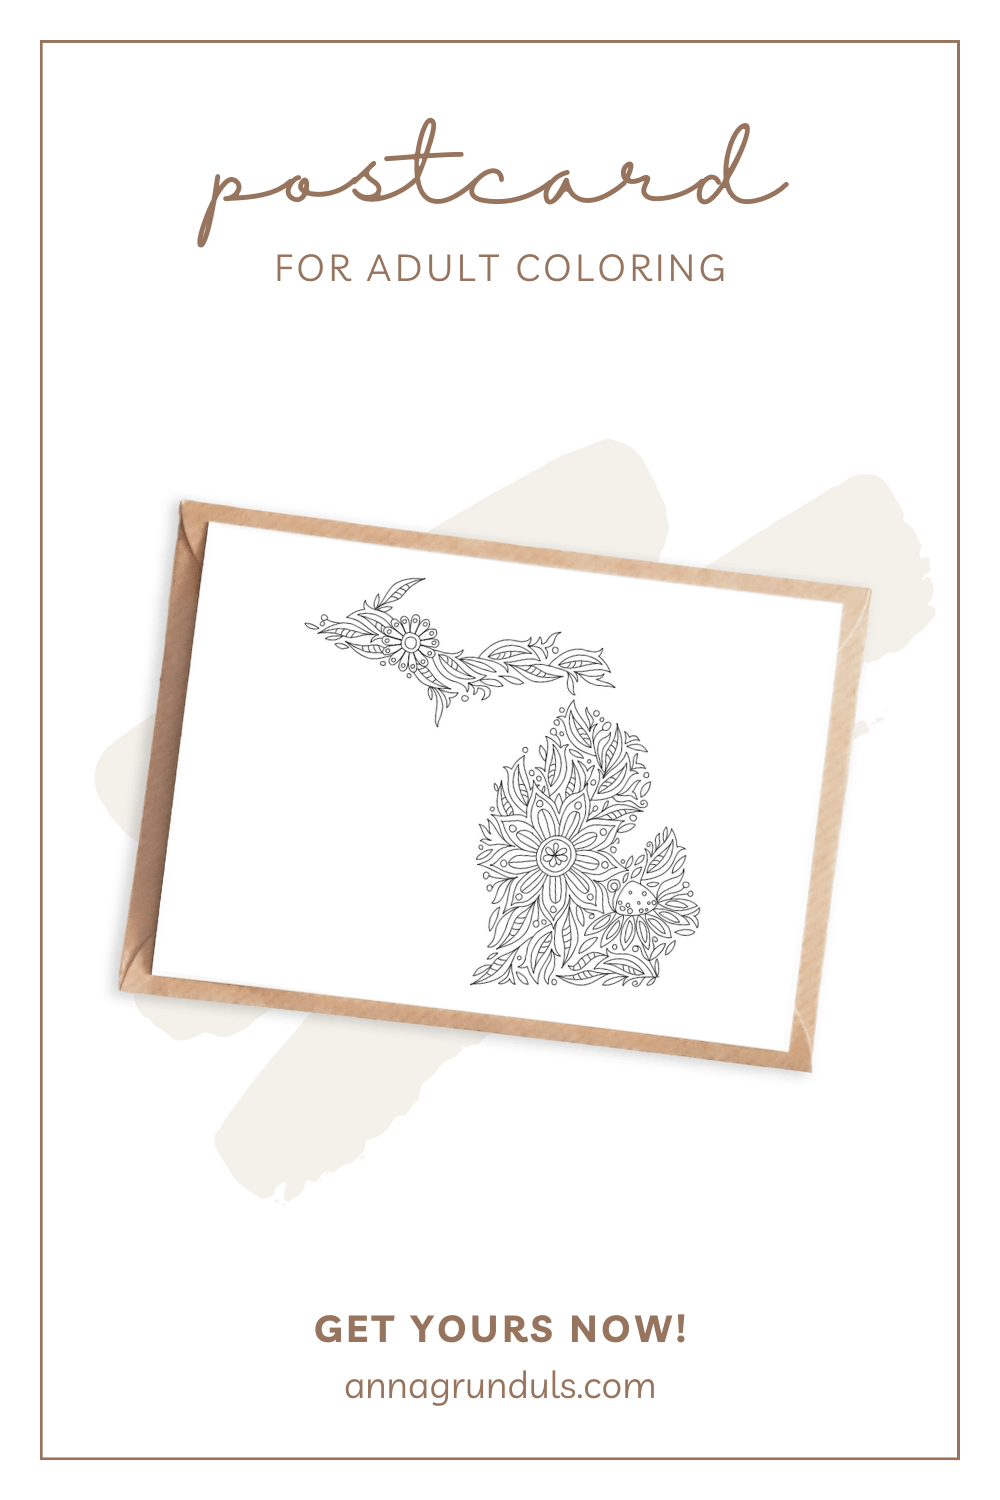 michigan map postcard for adult coloring pinterest pin